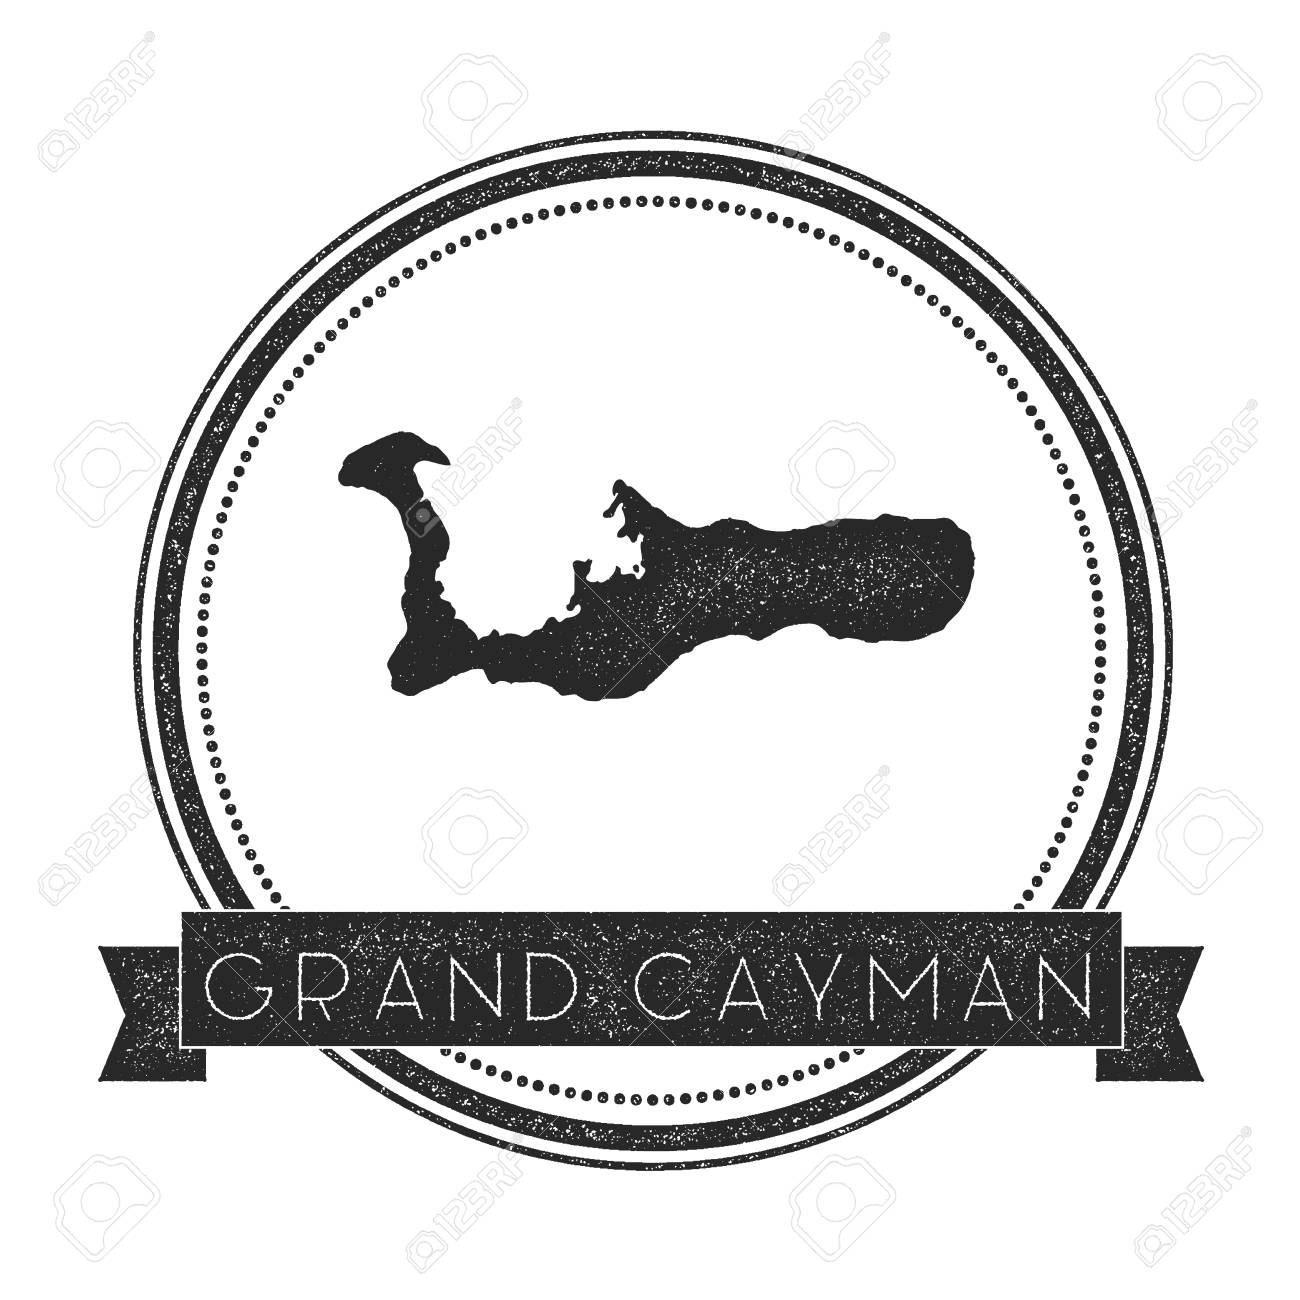 Grand Cayman Logo on virgin islands logo, cayman islands logo, bolivia logo, necker island logo, japan logo, freeport logo, peru logo, lebanon logo, papua new guinea logo, morocco logo, ukraine logo, cayman airways logo, grand namibia logo, fiji logo, antigua logo, poland logo, philippines logo, grand banks logo, united arab emirates logo, vancouver logo,